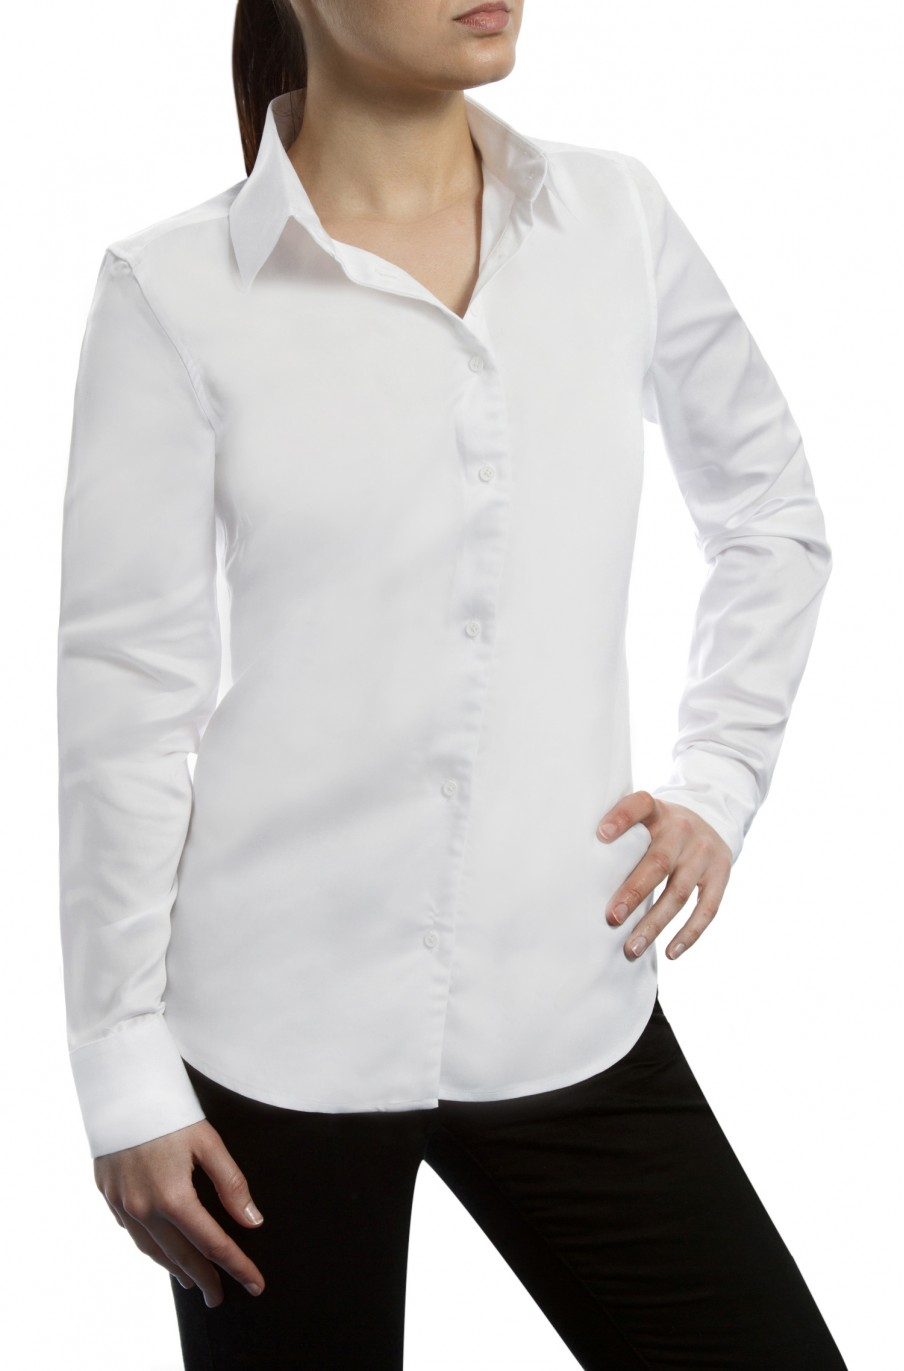 slim fit business white tencel shirts by detime ref 179 00 this slim. Black Bedroom Furniture Sets. Home Design Ideas